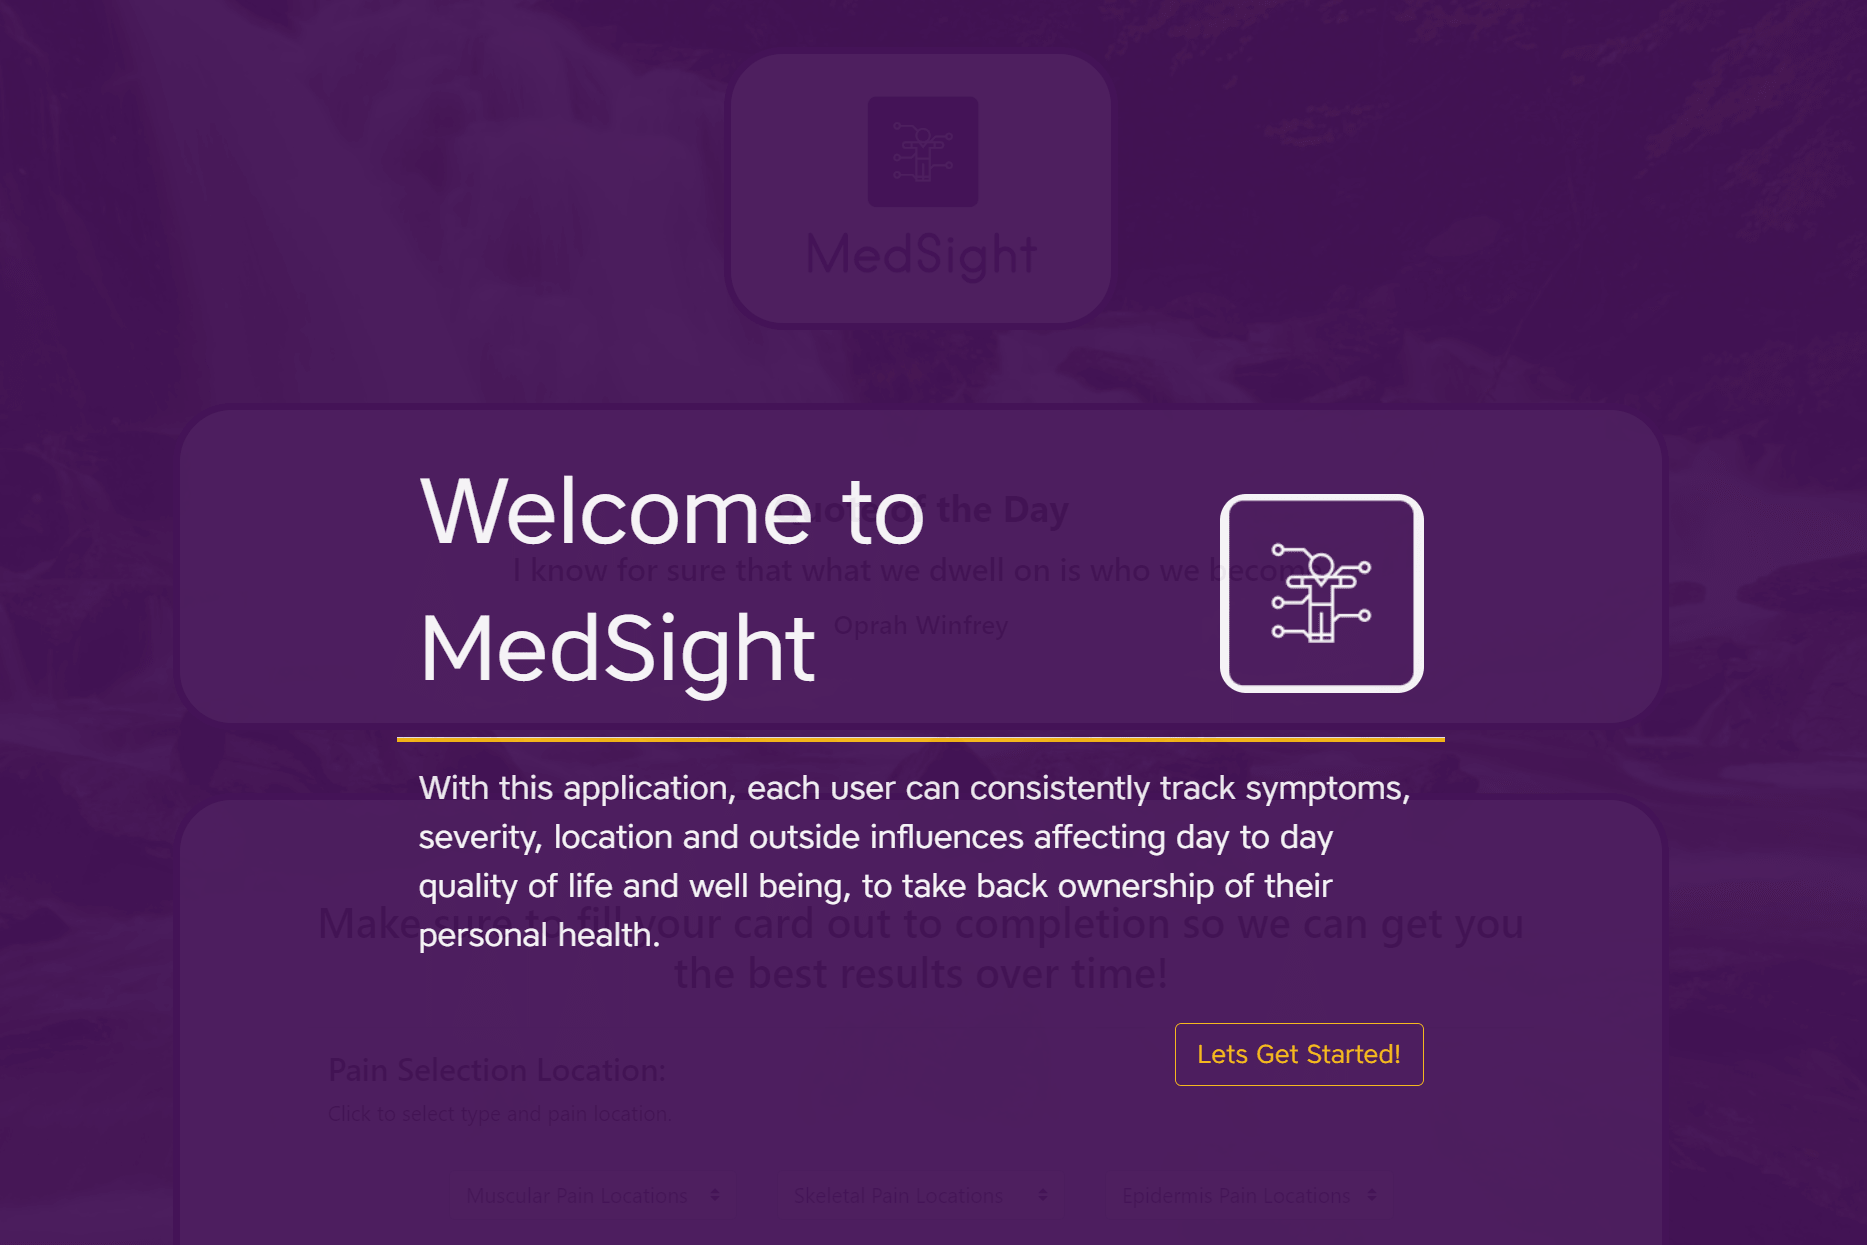 MedSight